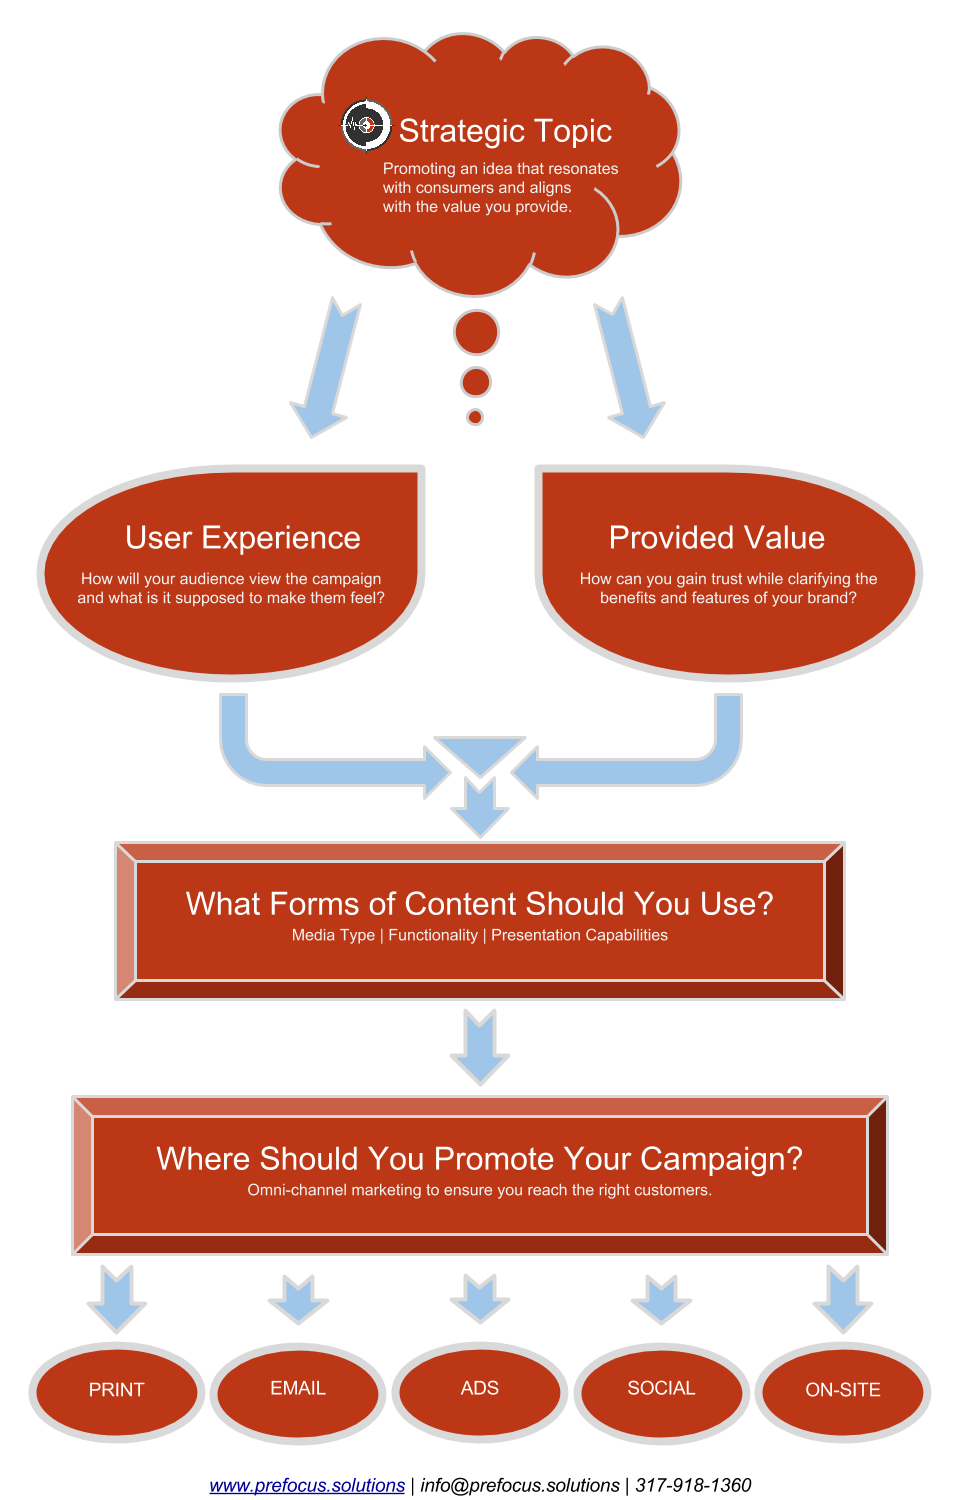 prefocus-campaign-building-process-development-for-brands-looking-to-invest-in-affordable-marketing-efforts-designed-by-jordan-trask-in-phoenix-az